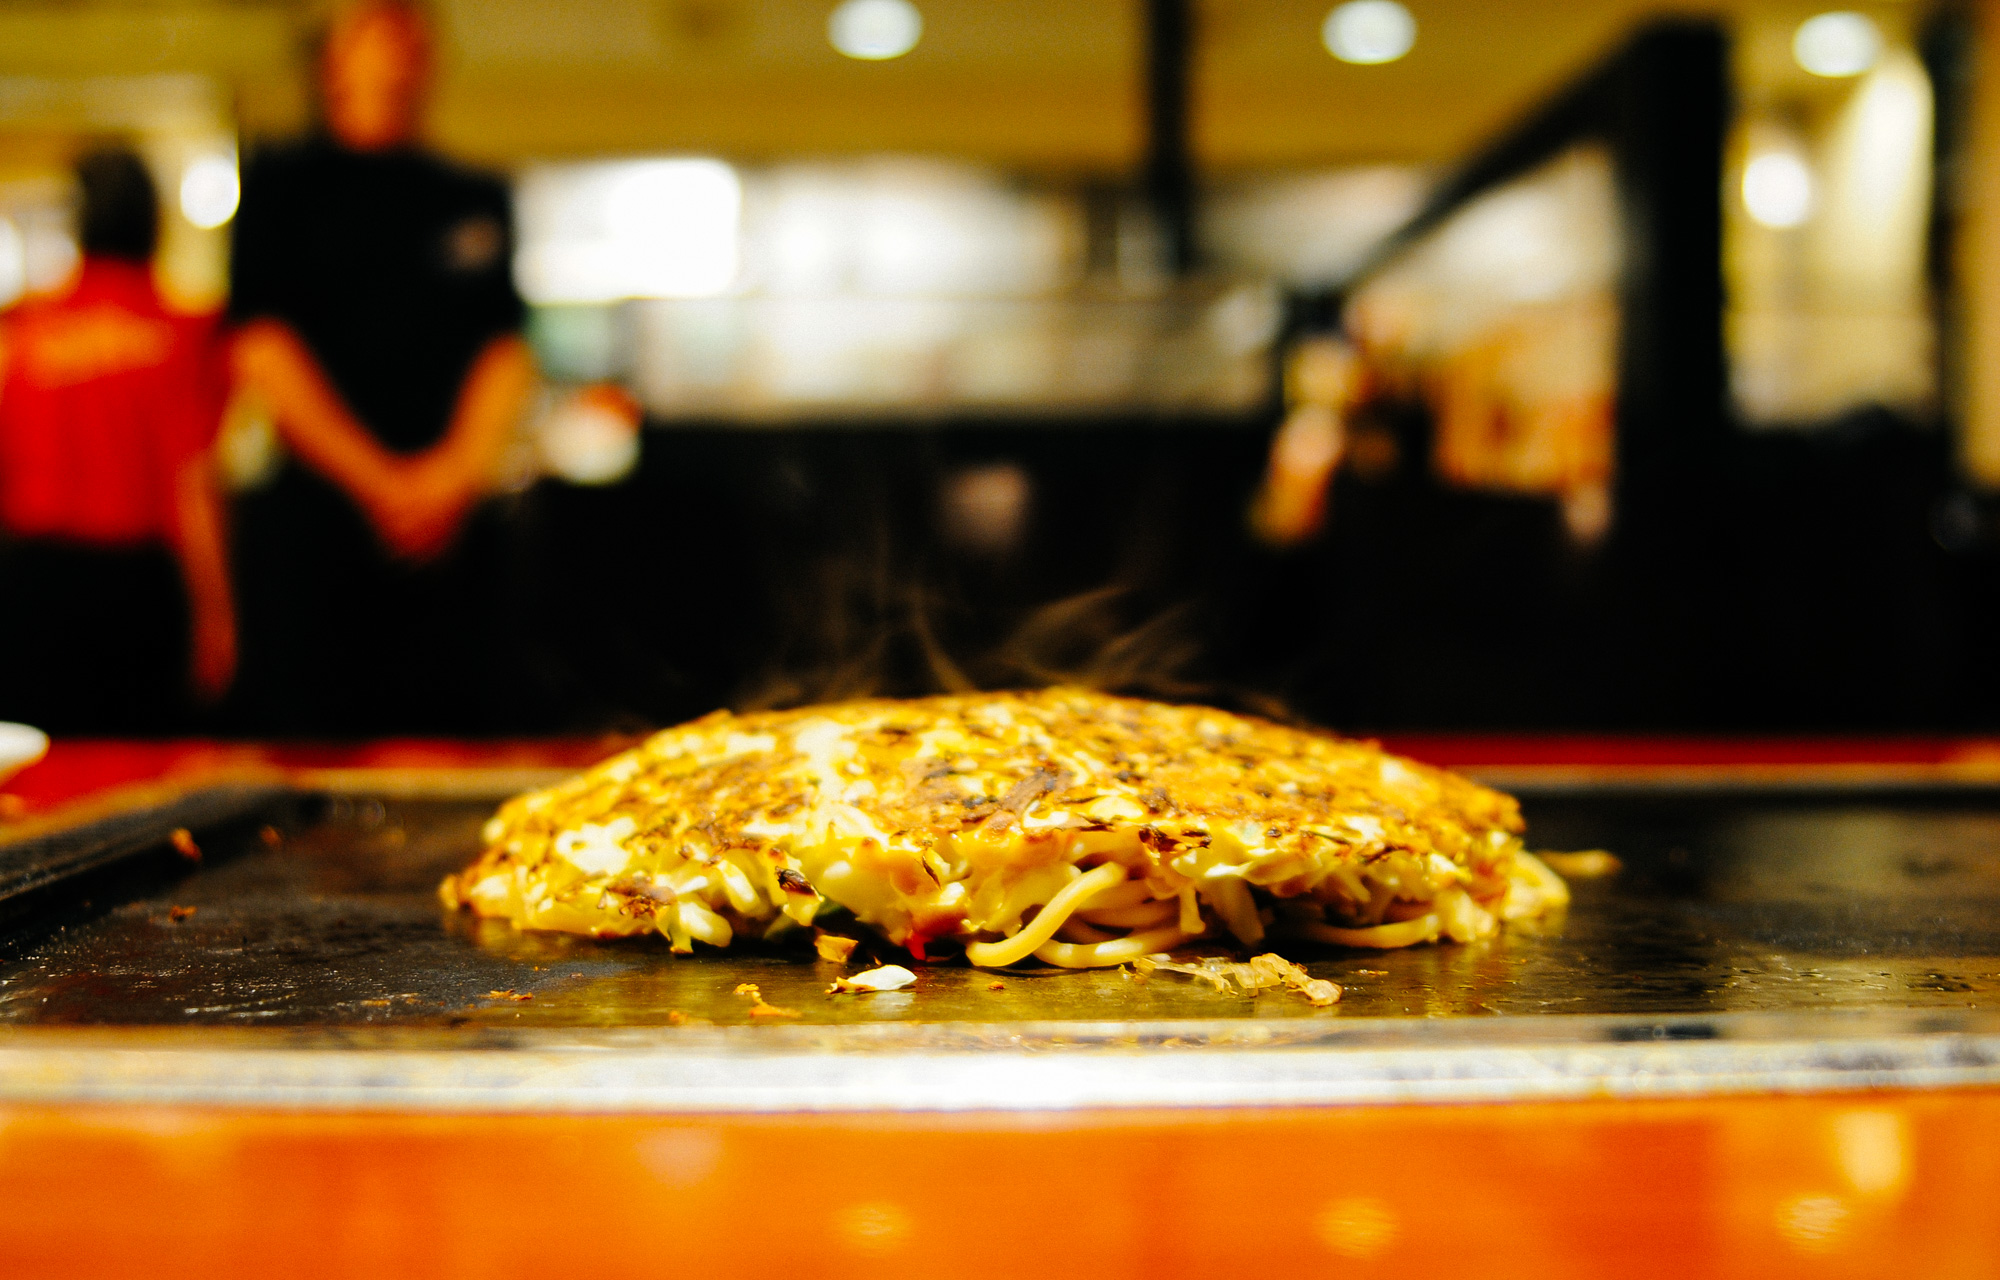 The okonomiyaki is sometimes called the Japanese pizza or crepe. I tell you it tastes nothing like a pizza or crepe.